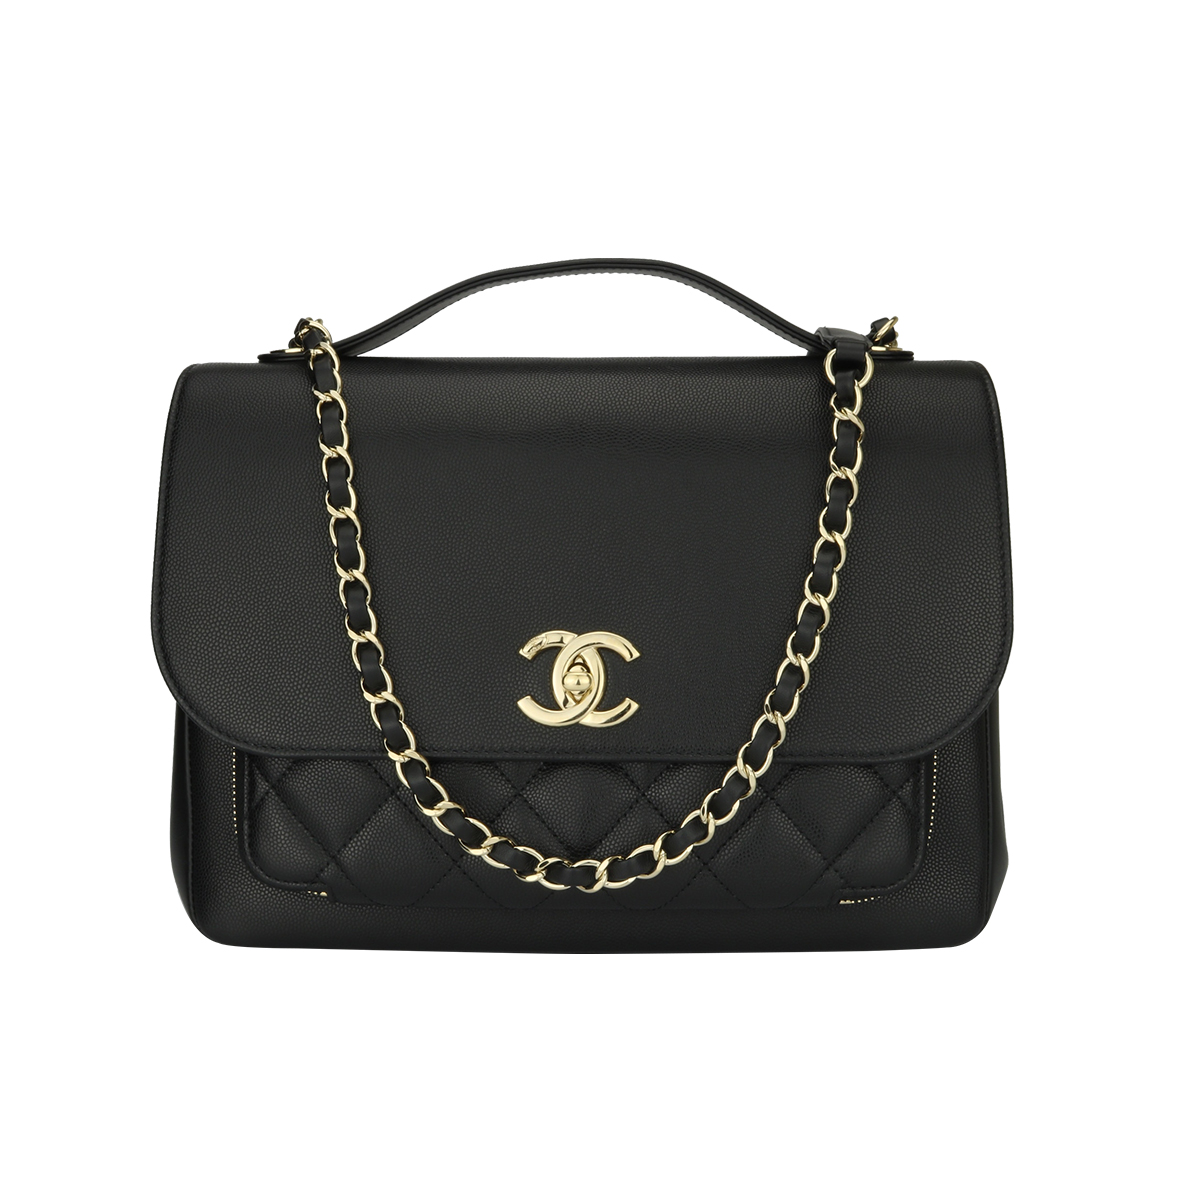 9a87ec1ff2be93 Home/Chanel/CHANEL Business Affinity Large Black Caviar/Calf Champagne  Hardware 2017. ; 